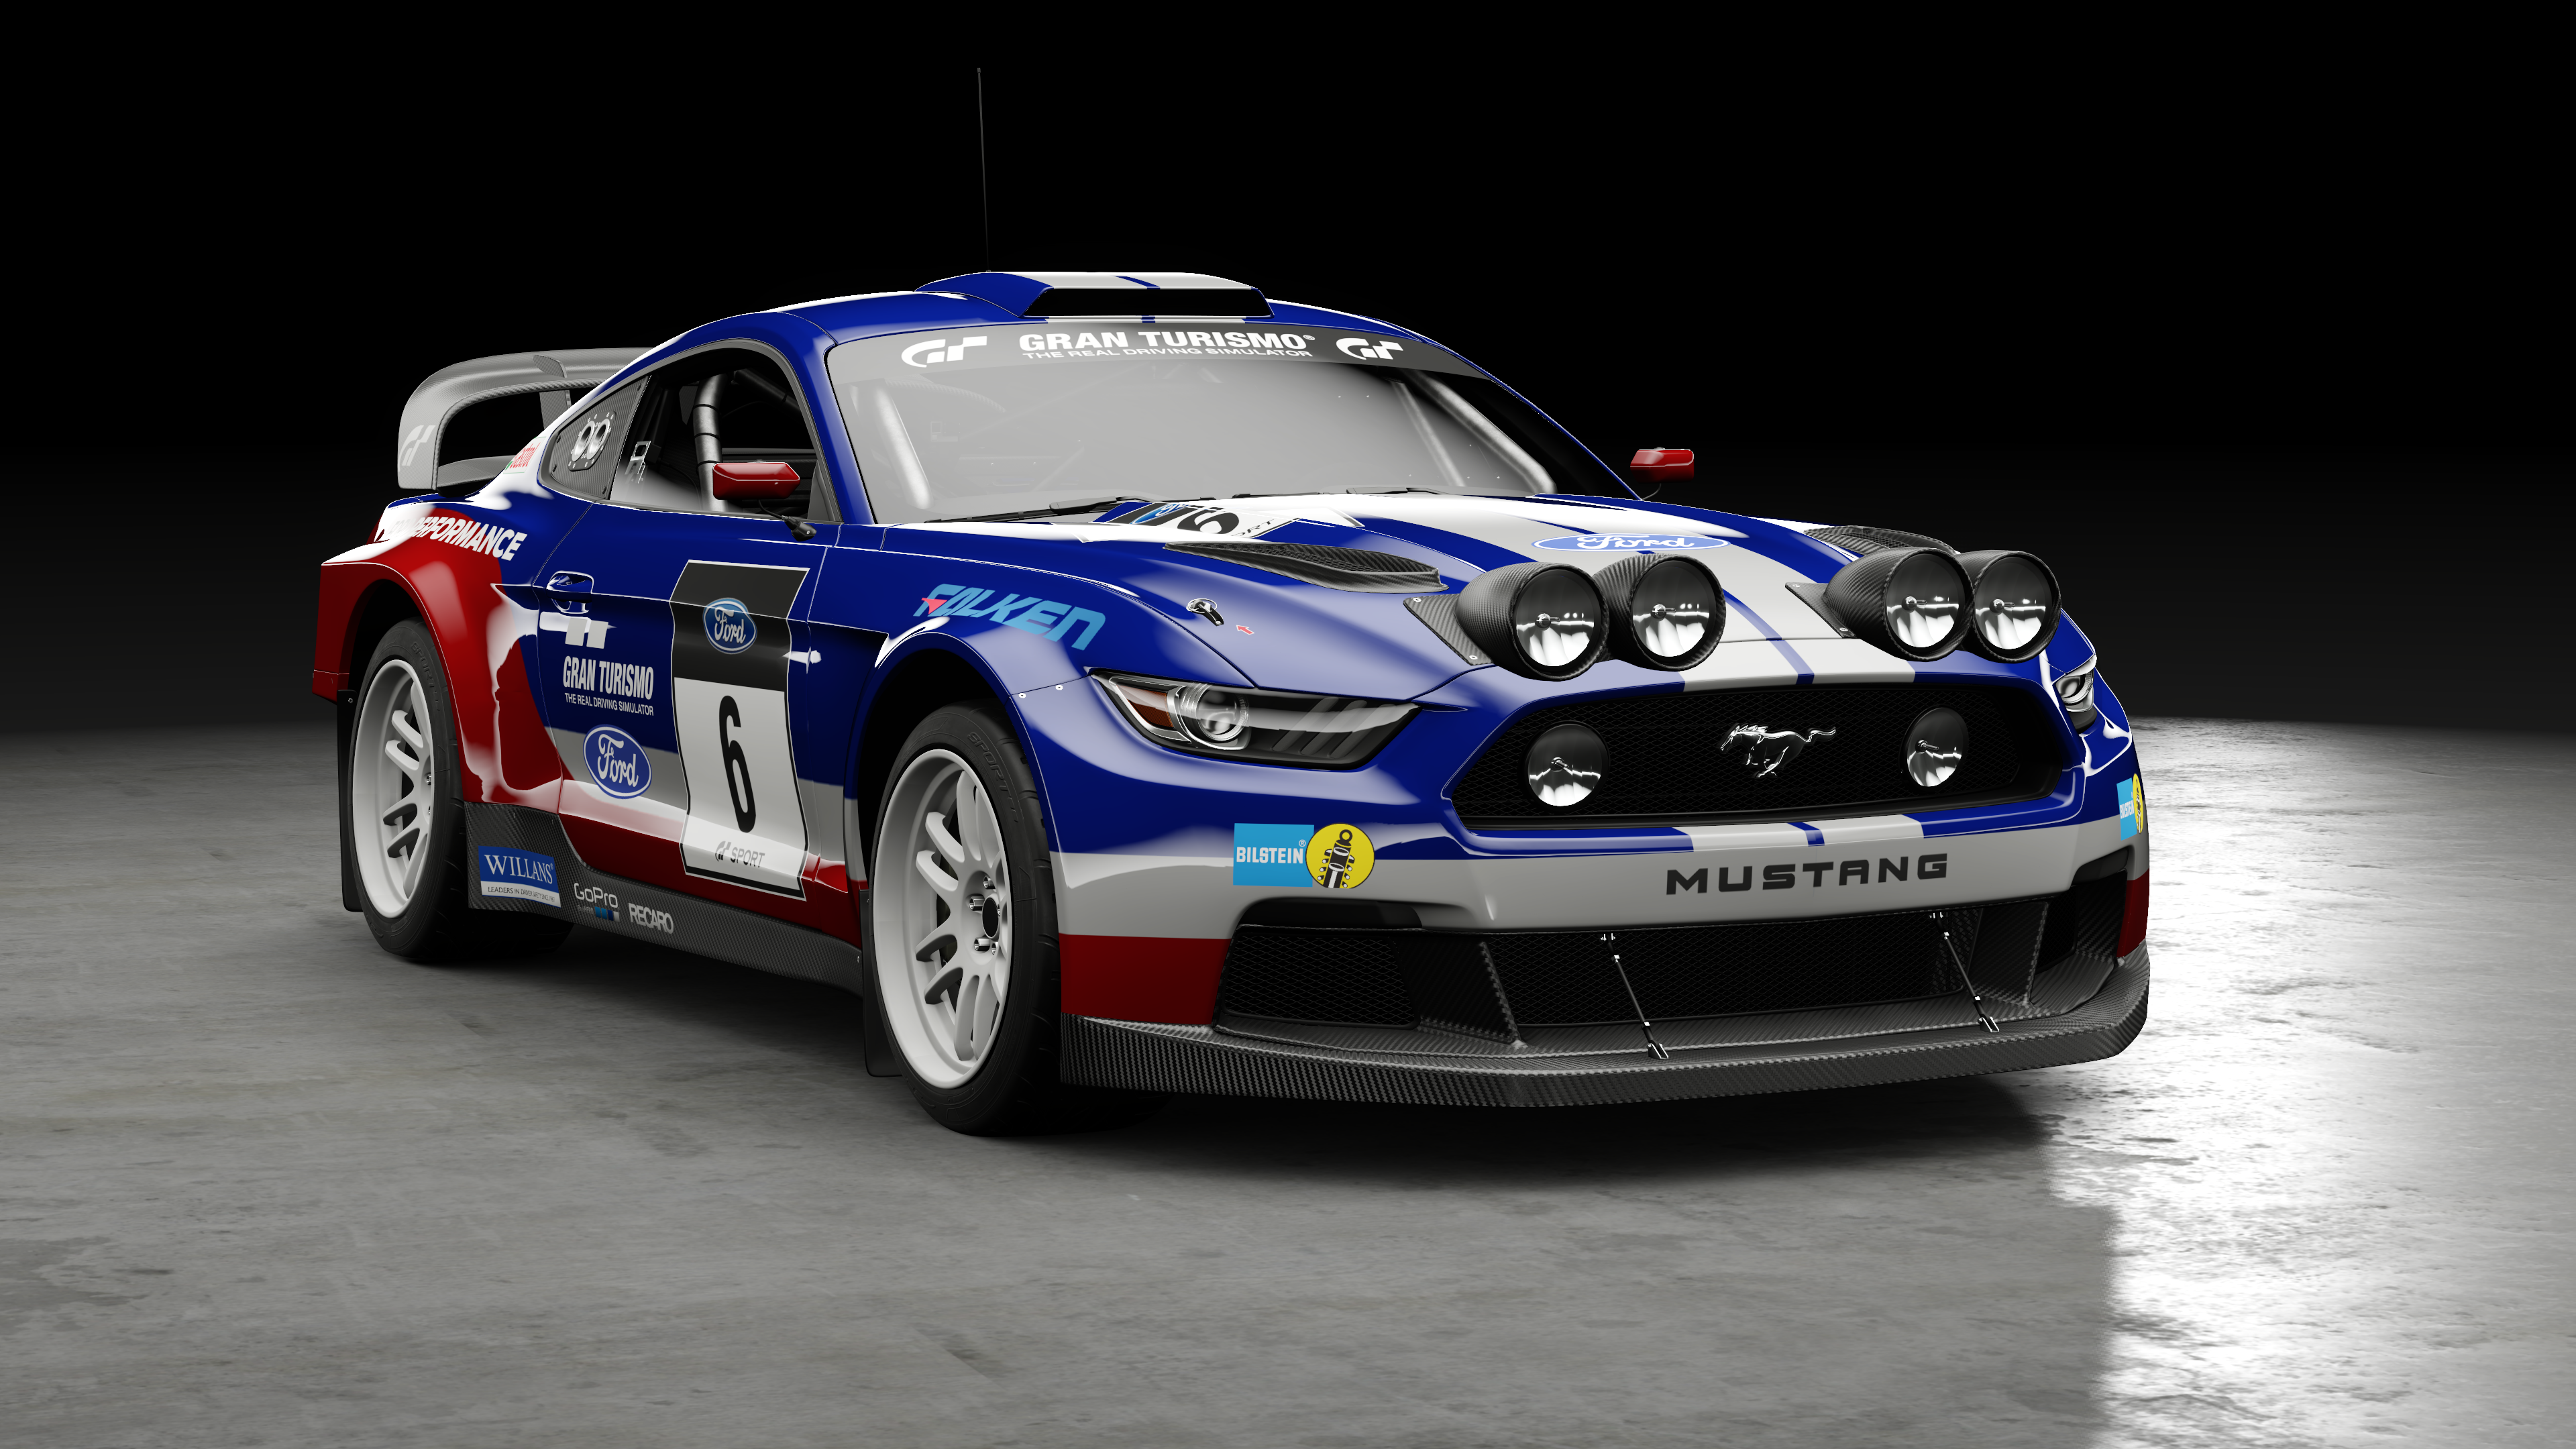 gt sport ford mustang group b rally car. Black Bedroom Furniture Sets. Home Design Ideas